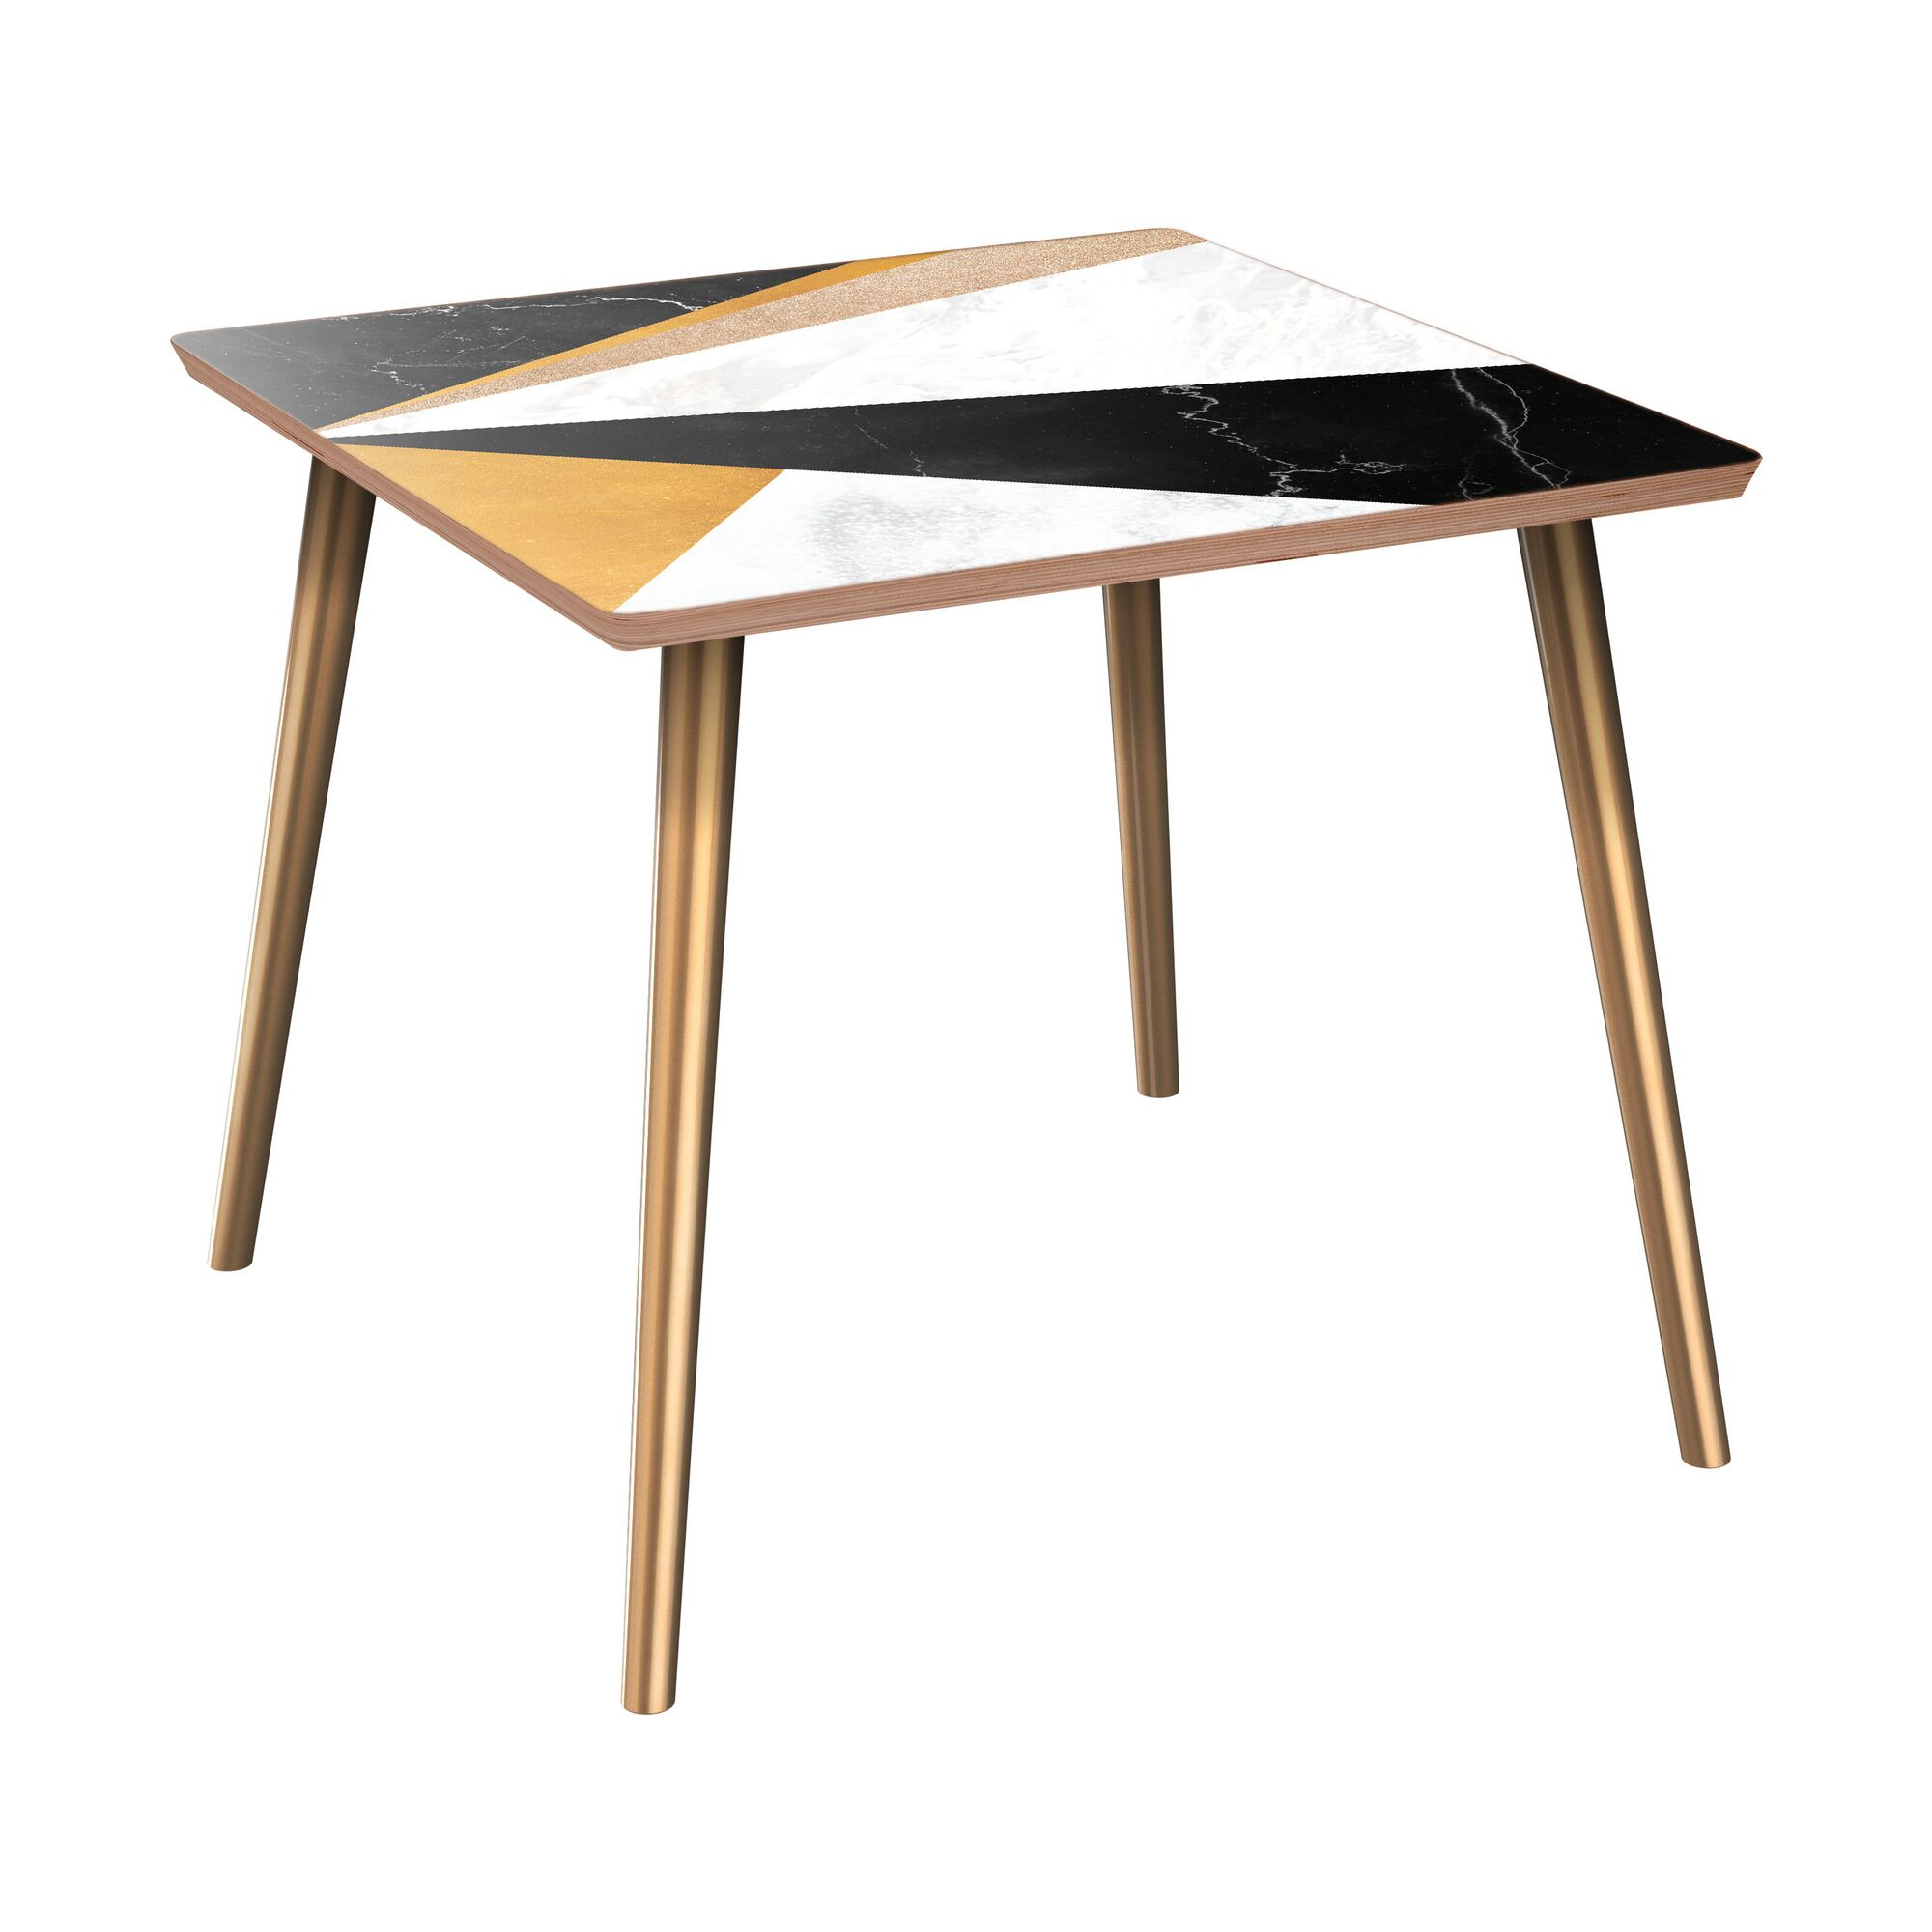 Gupton End Table Table Base Color: Brass, Table Top Color: Walnut/Black